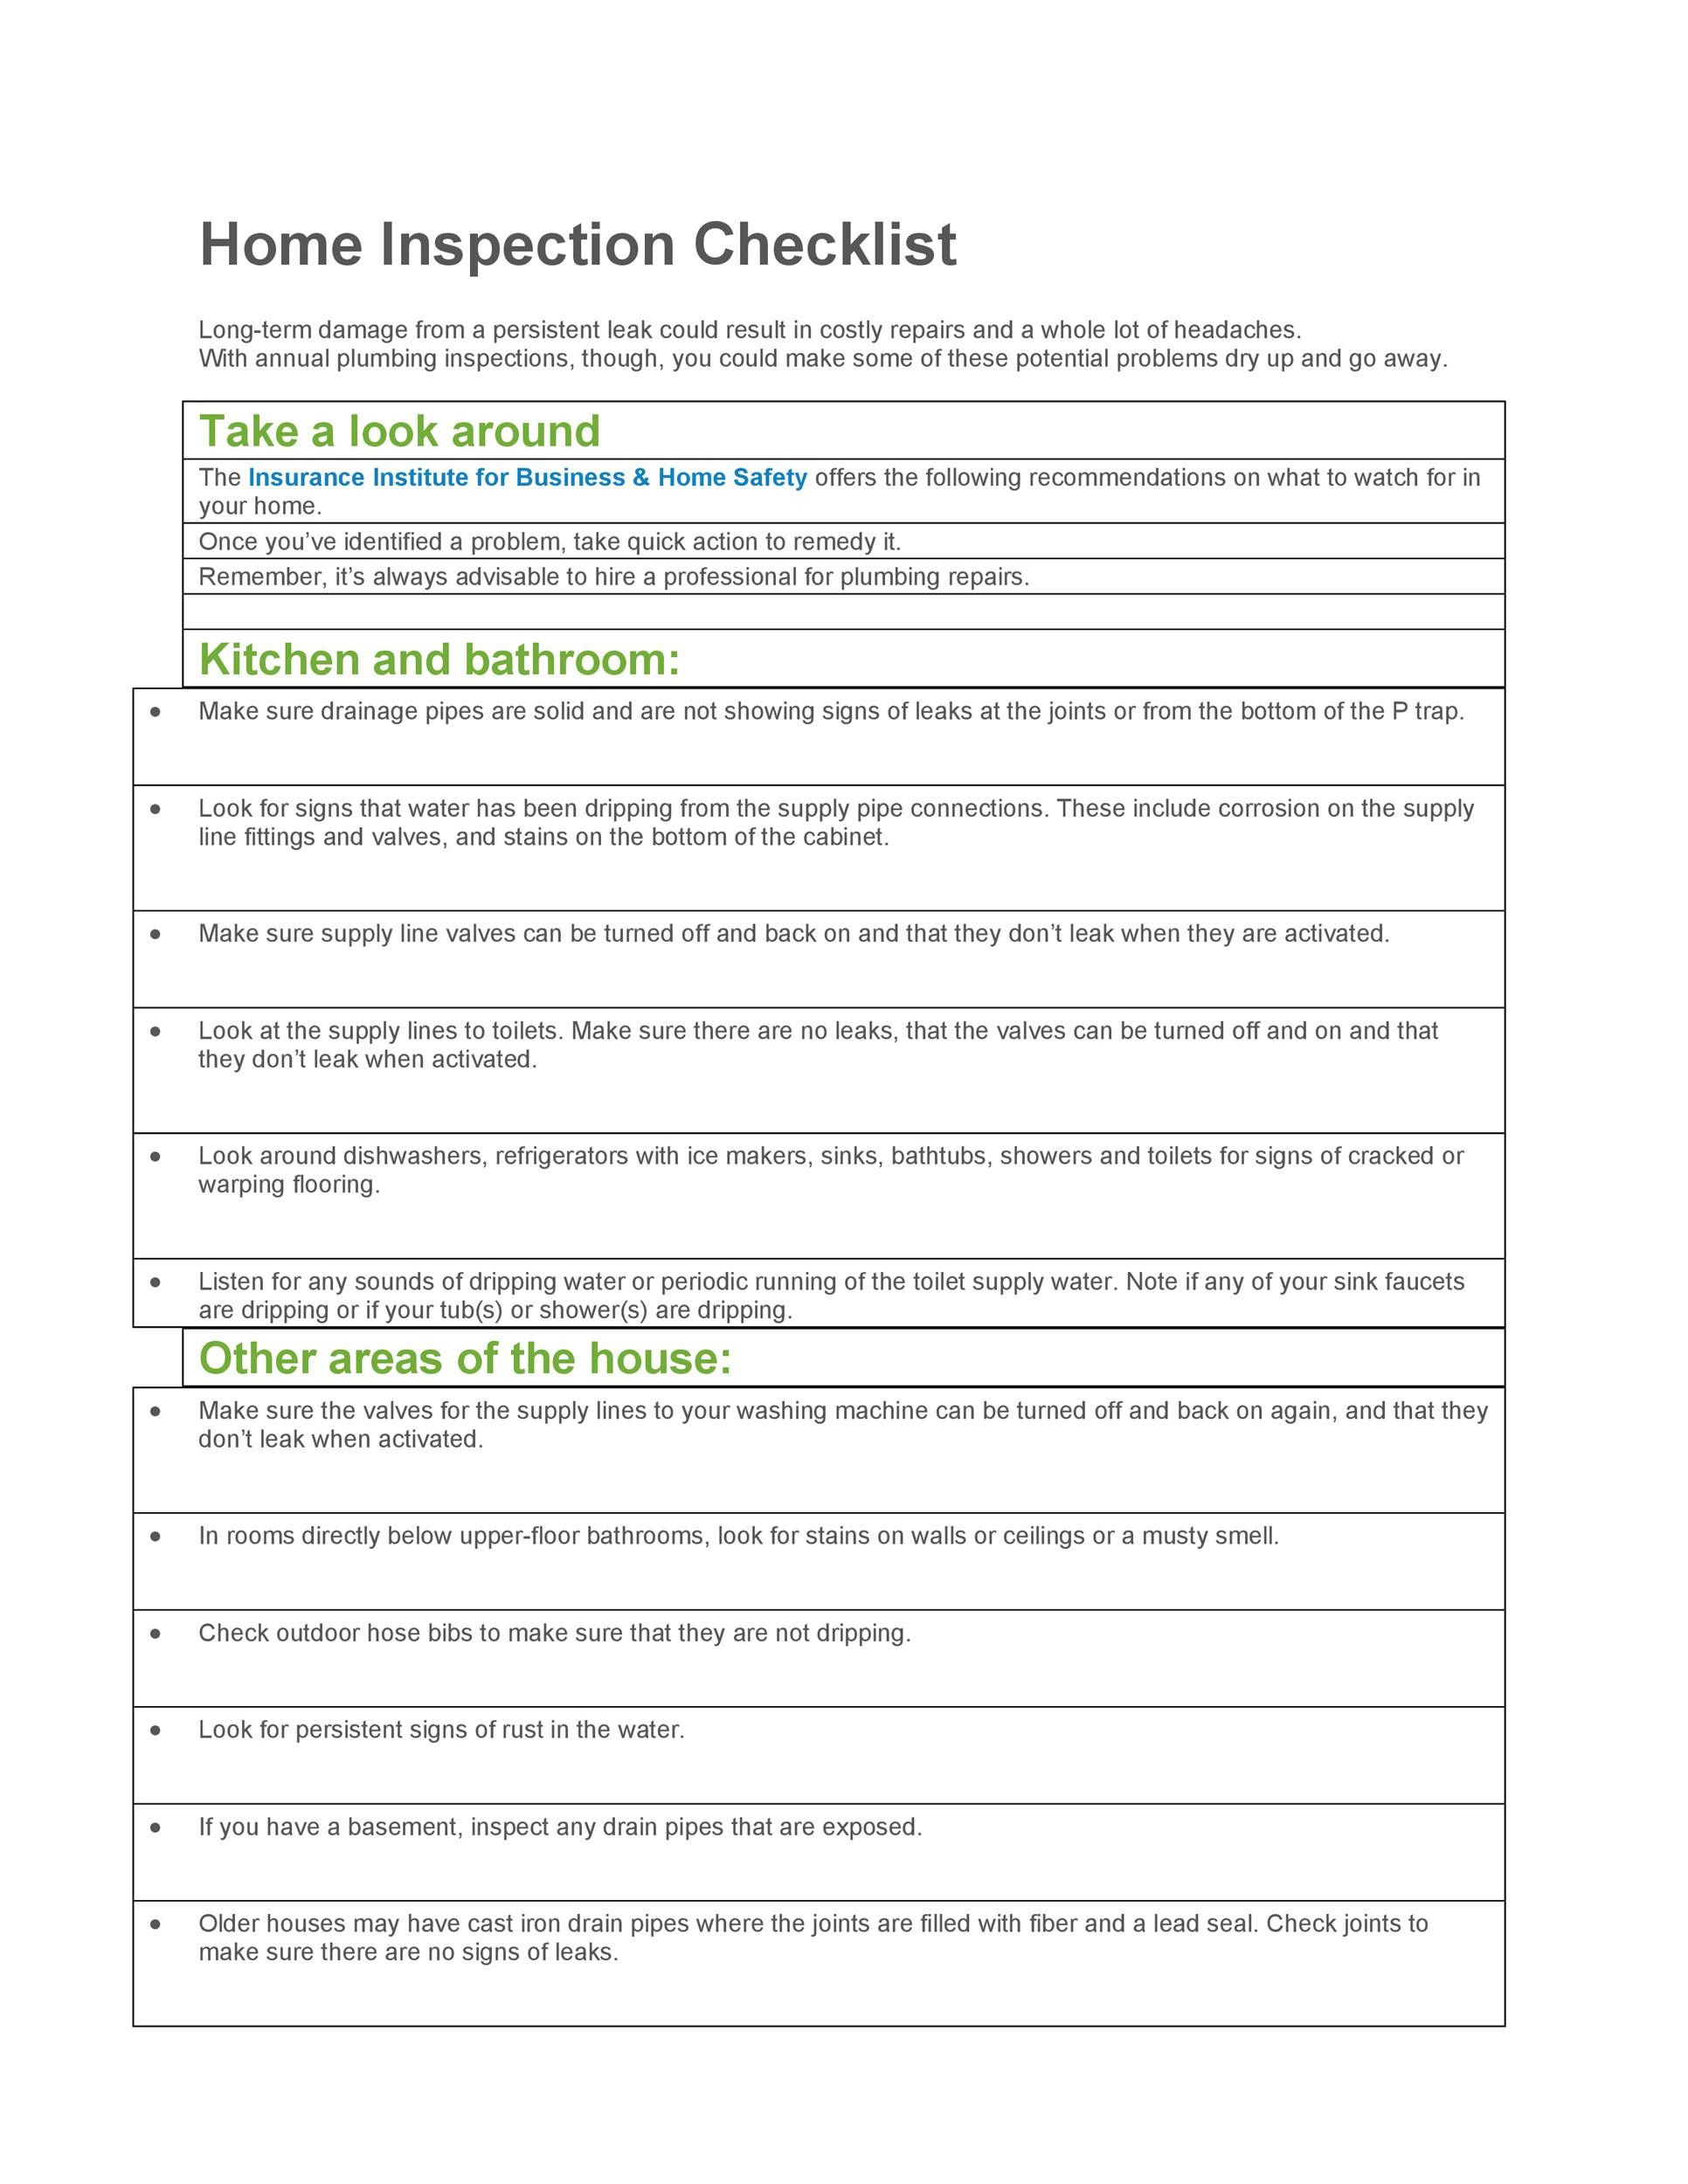 Printable Home Inspection Checklist 07